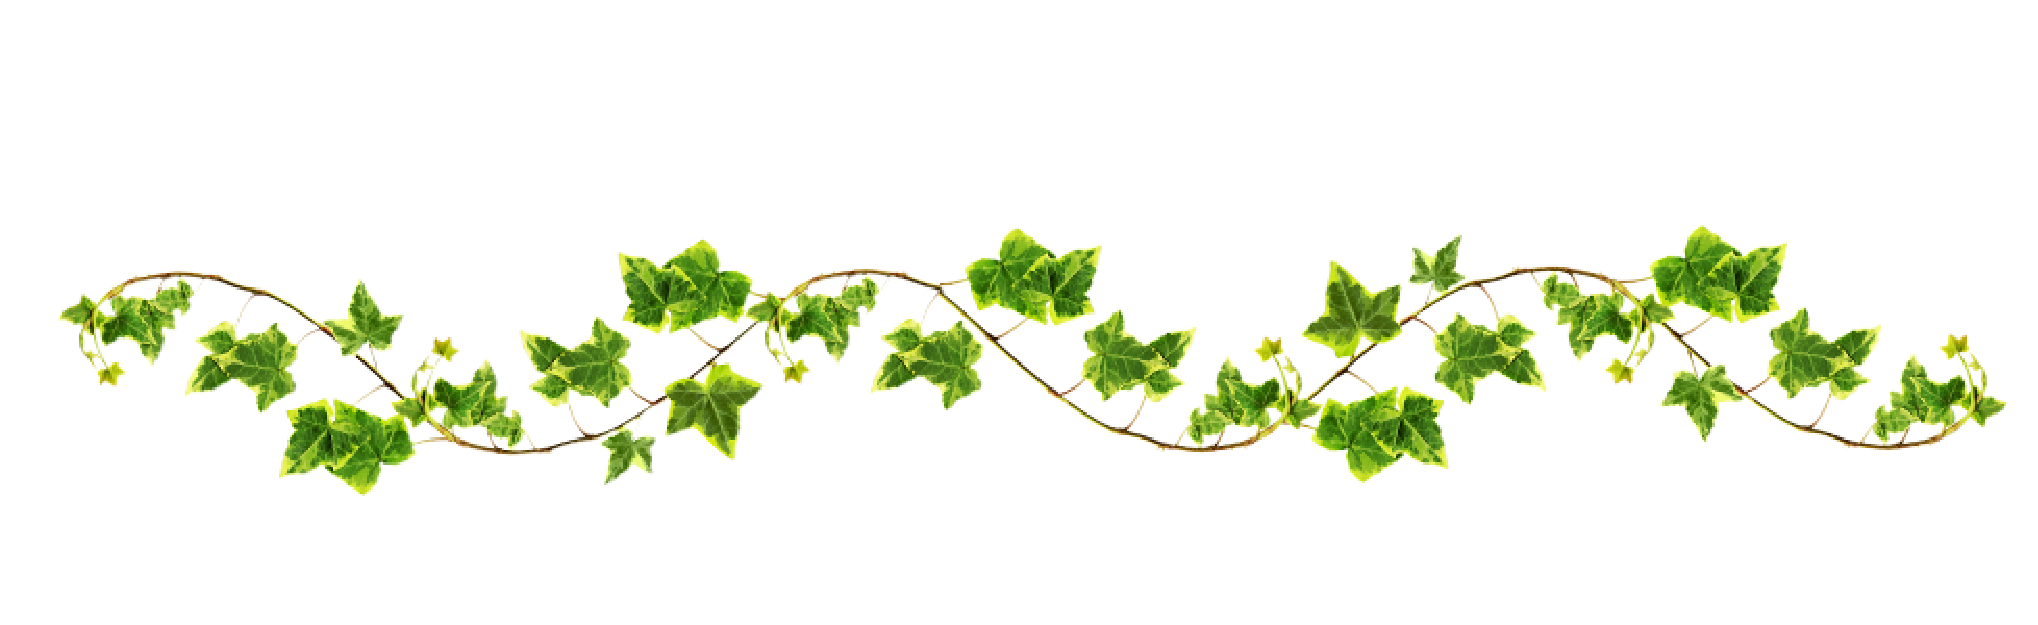 vine with maple like l 24814 png images pngio